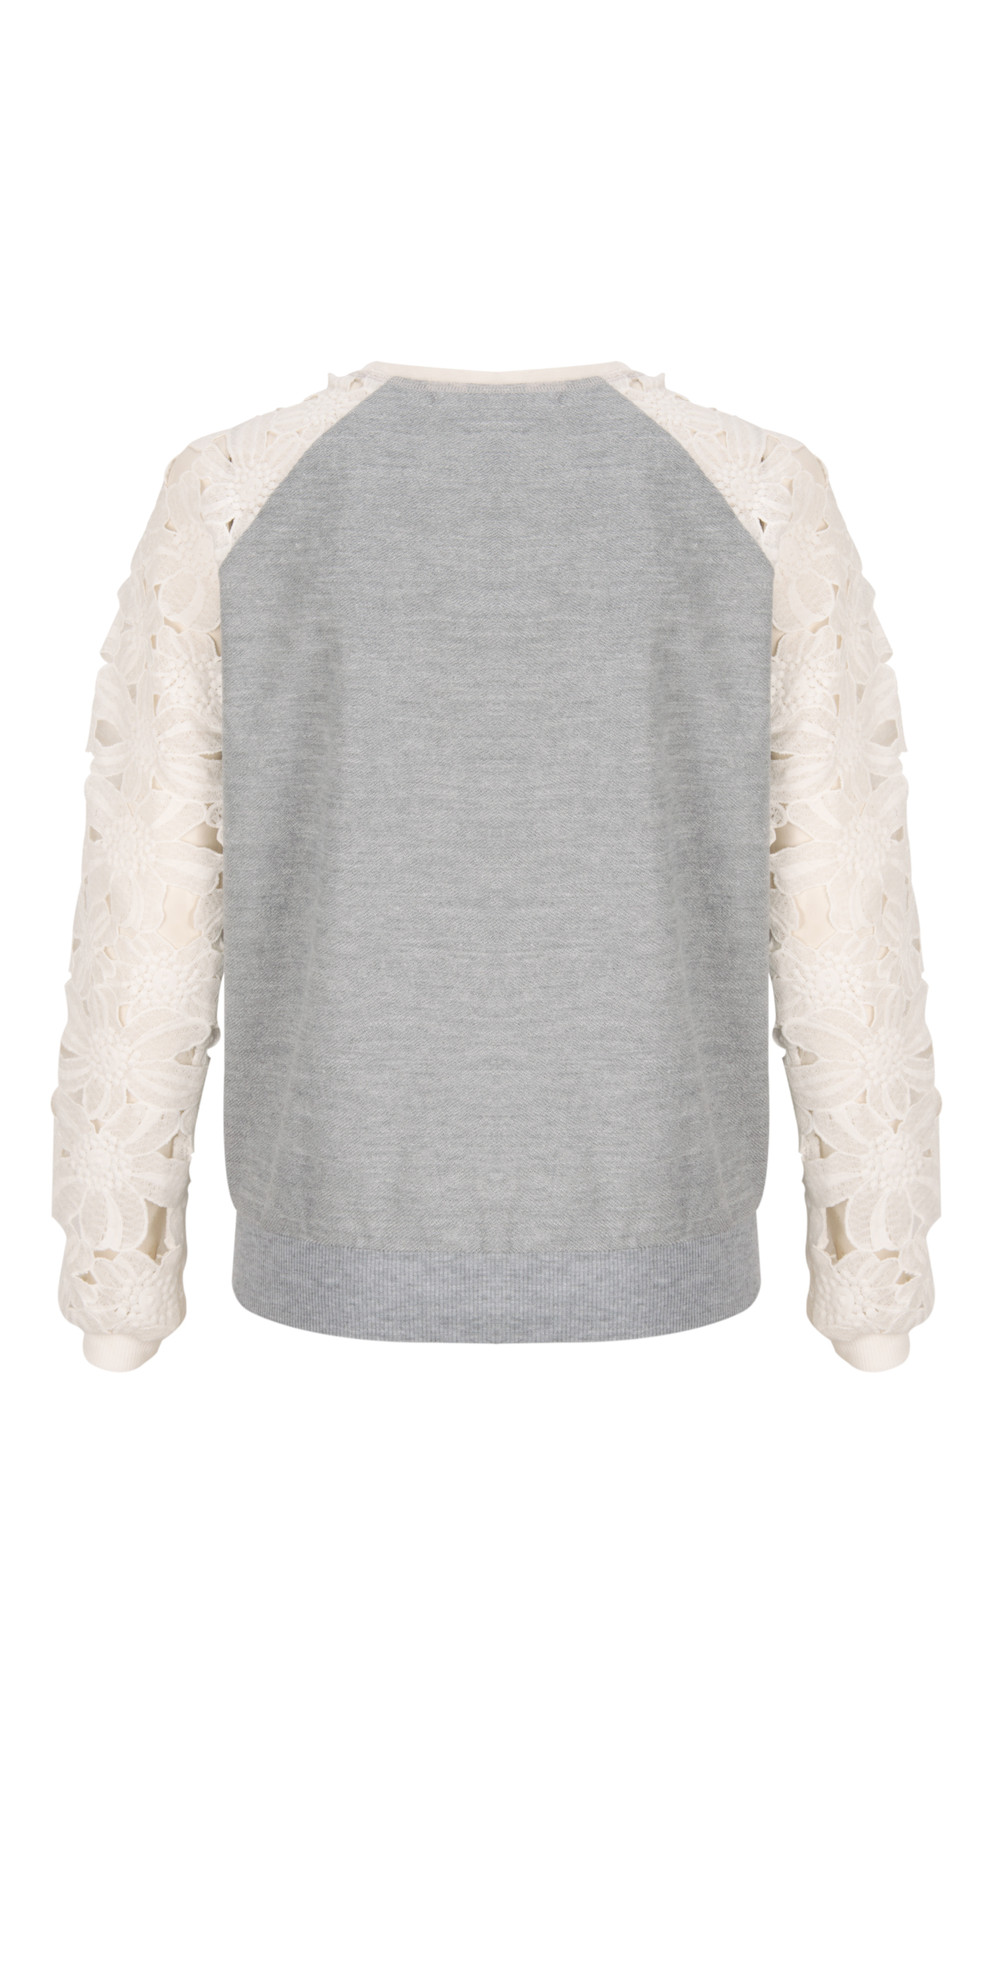 NEW - Lace Sleeved Sweatshirt main image